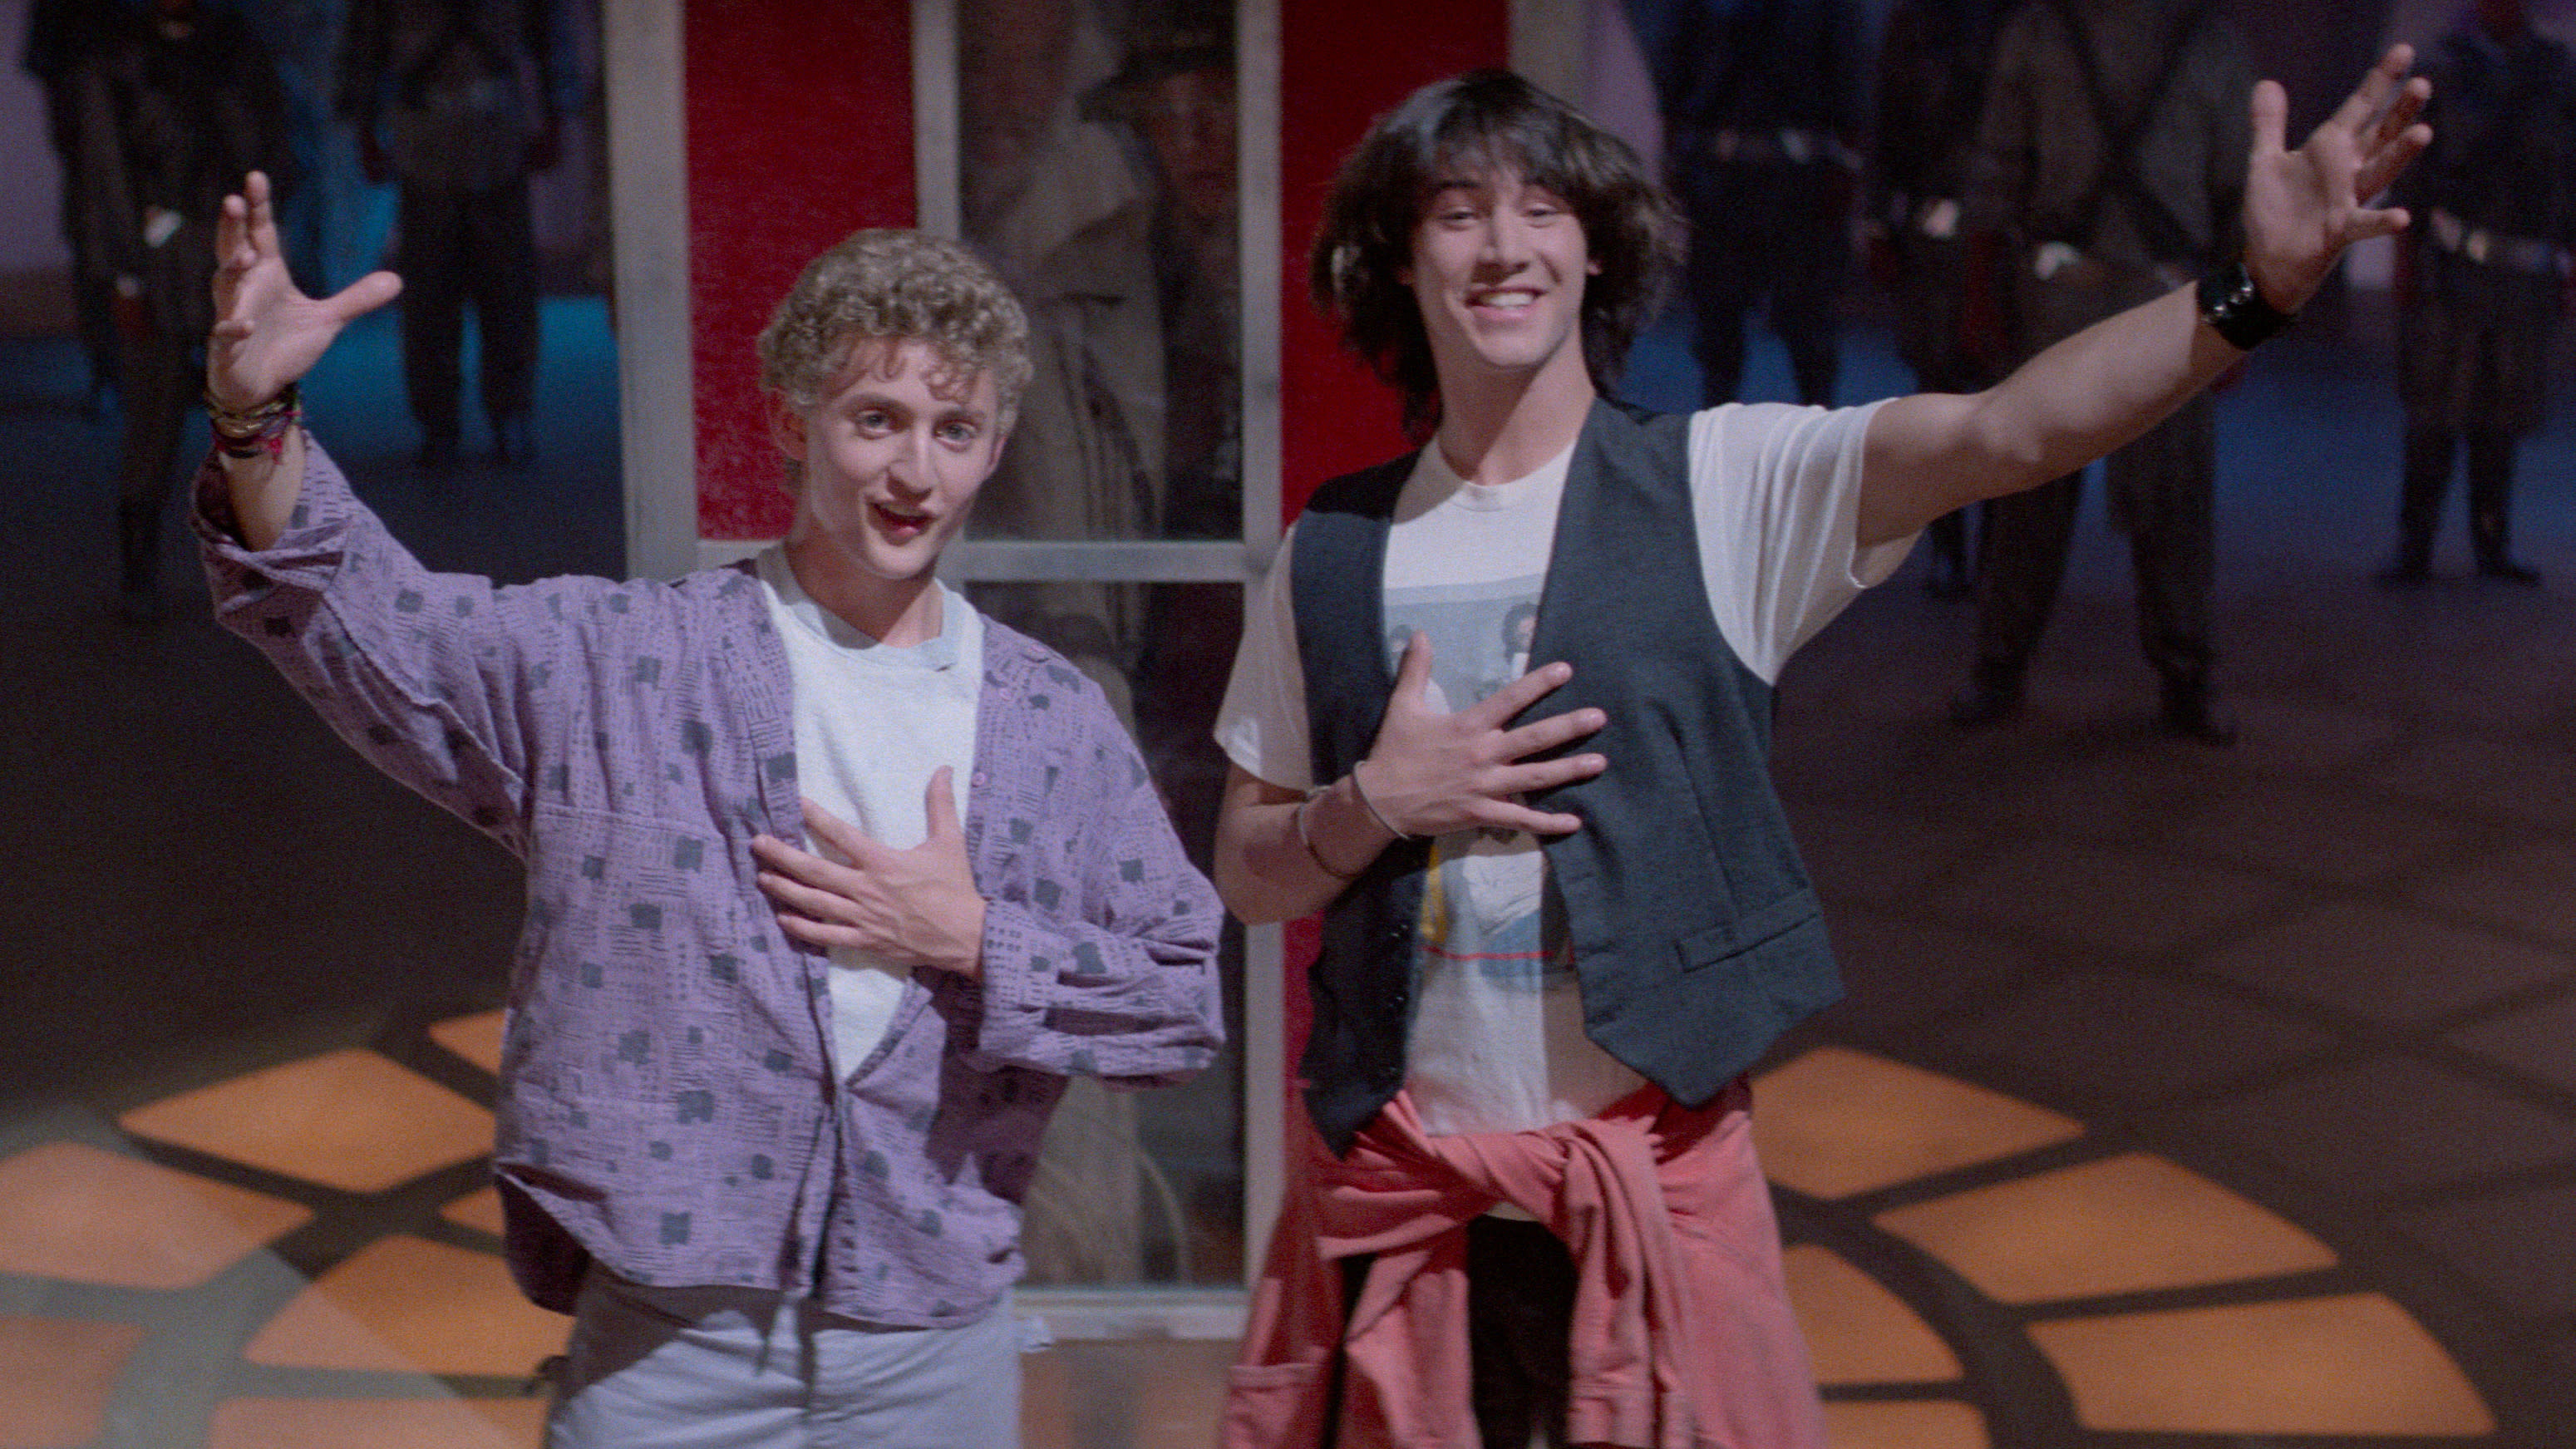 'Bill & Ted' writers reveal the origin of the iconic characters (exclusive)